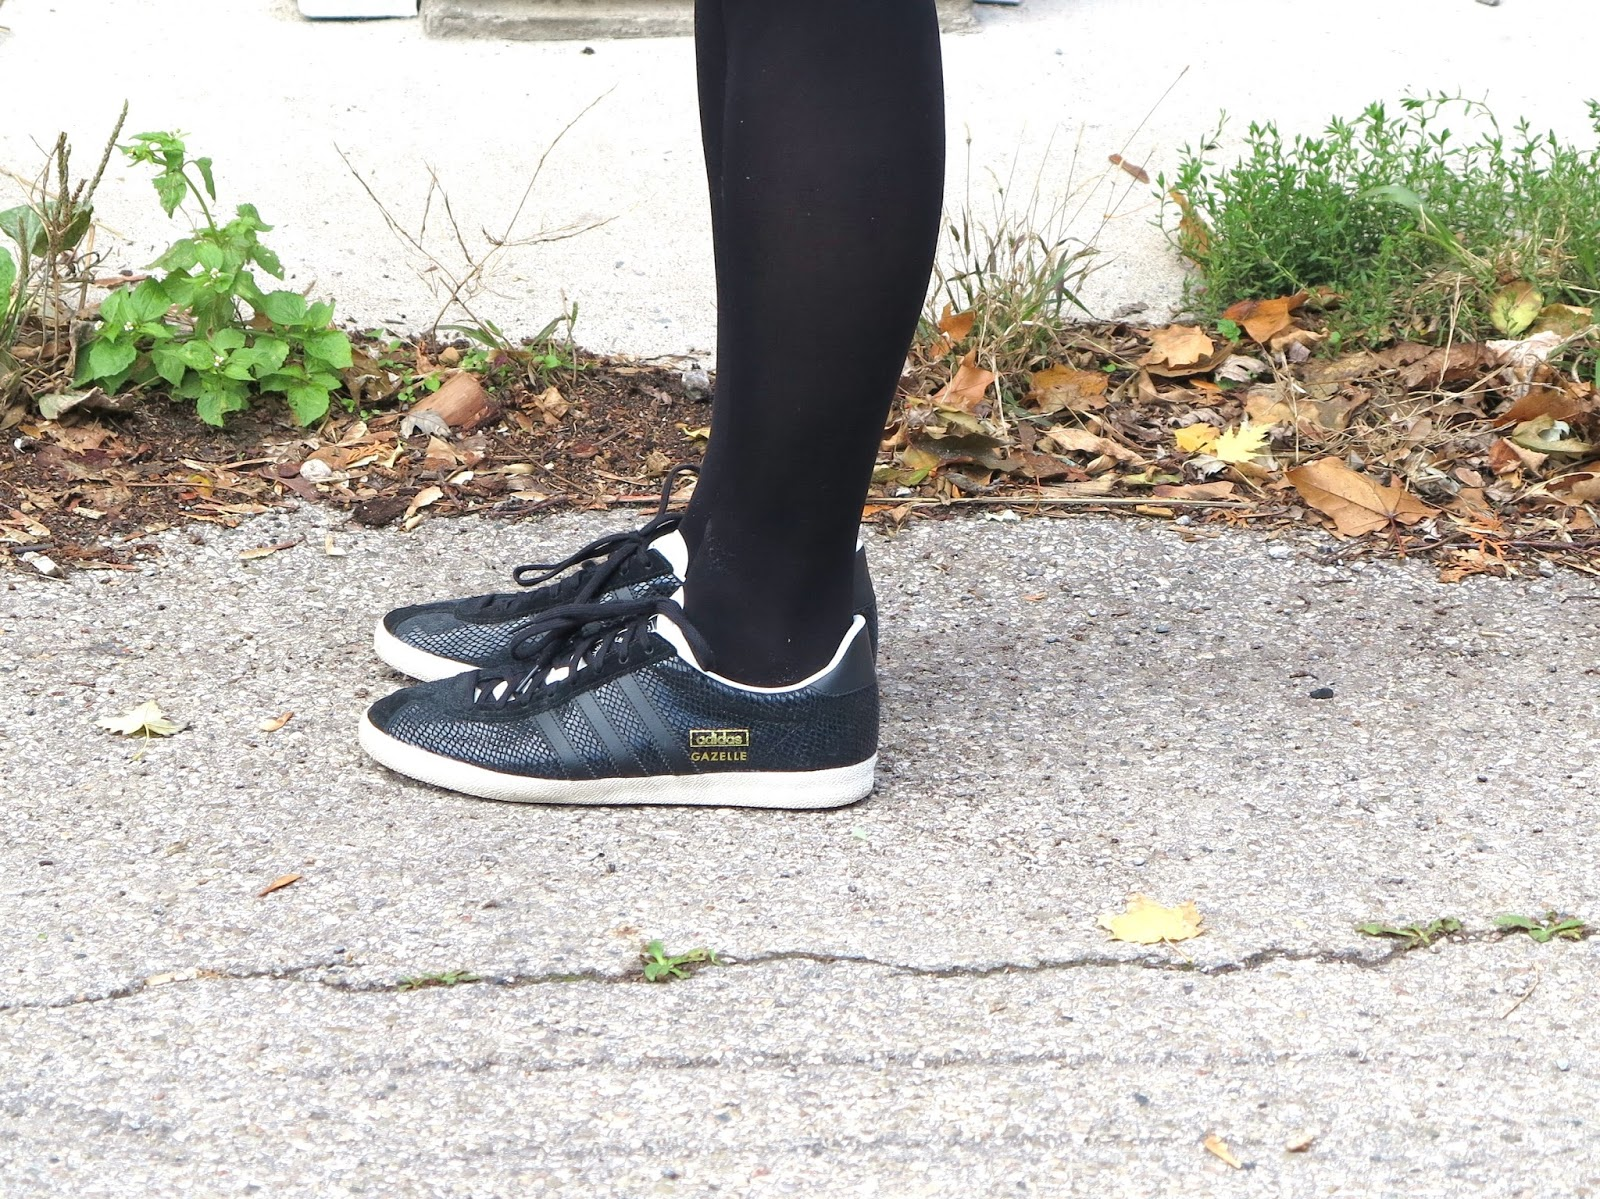 adidas, minimum, fashion, ootd, toronto blog, style, shoes